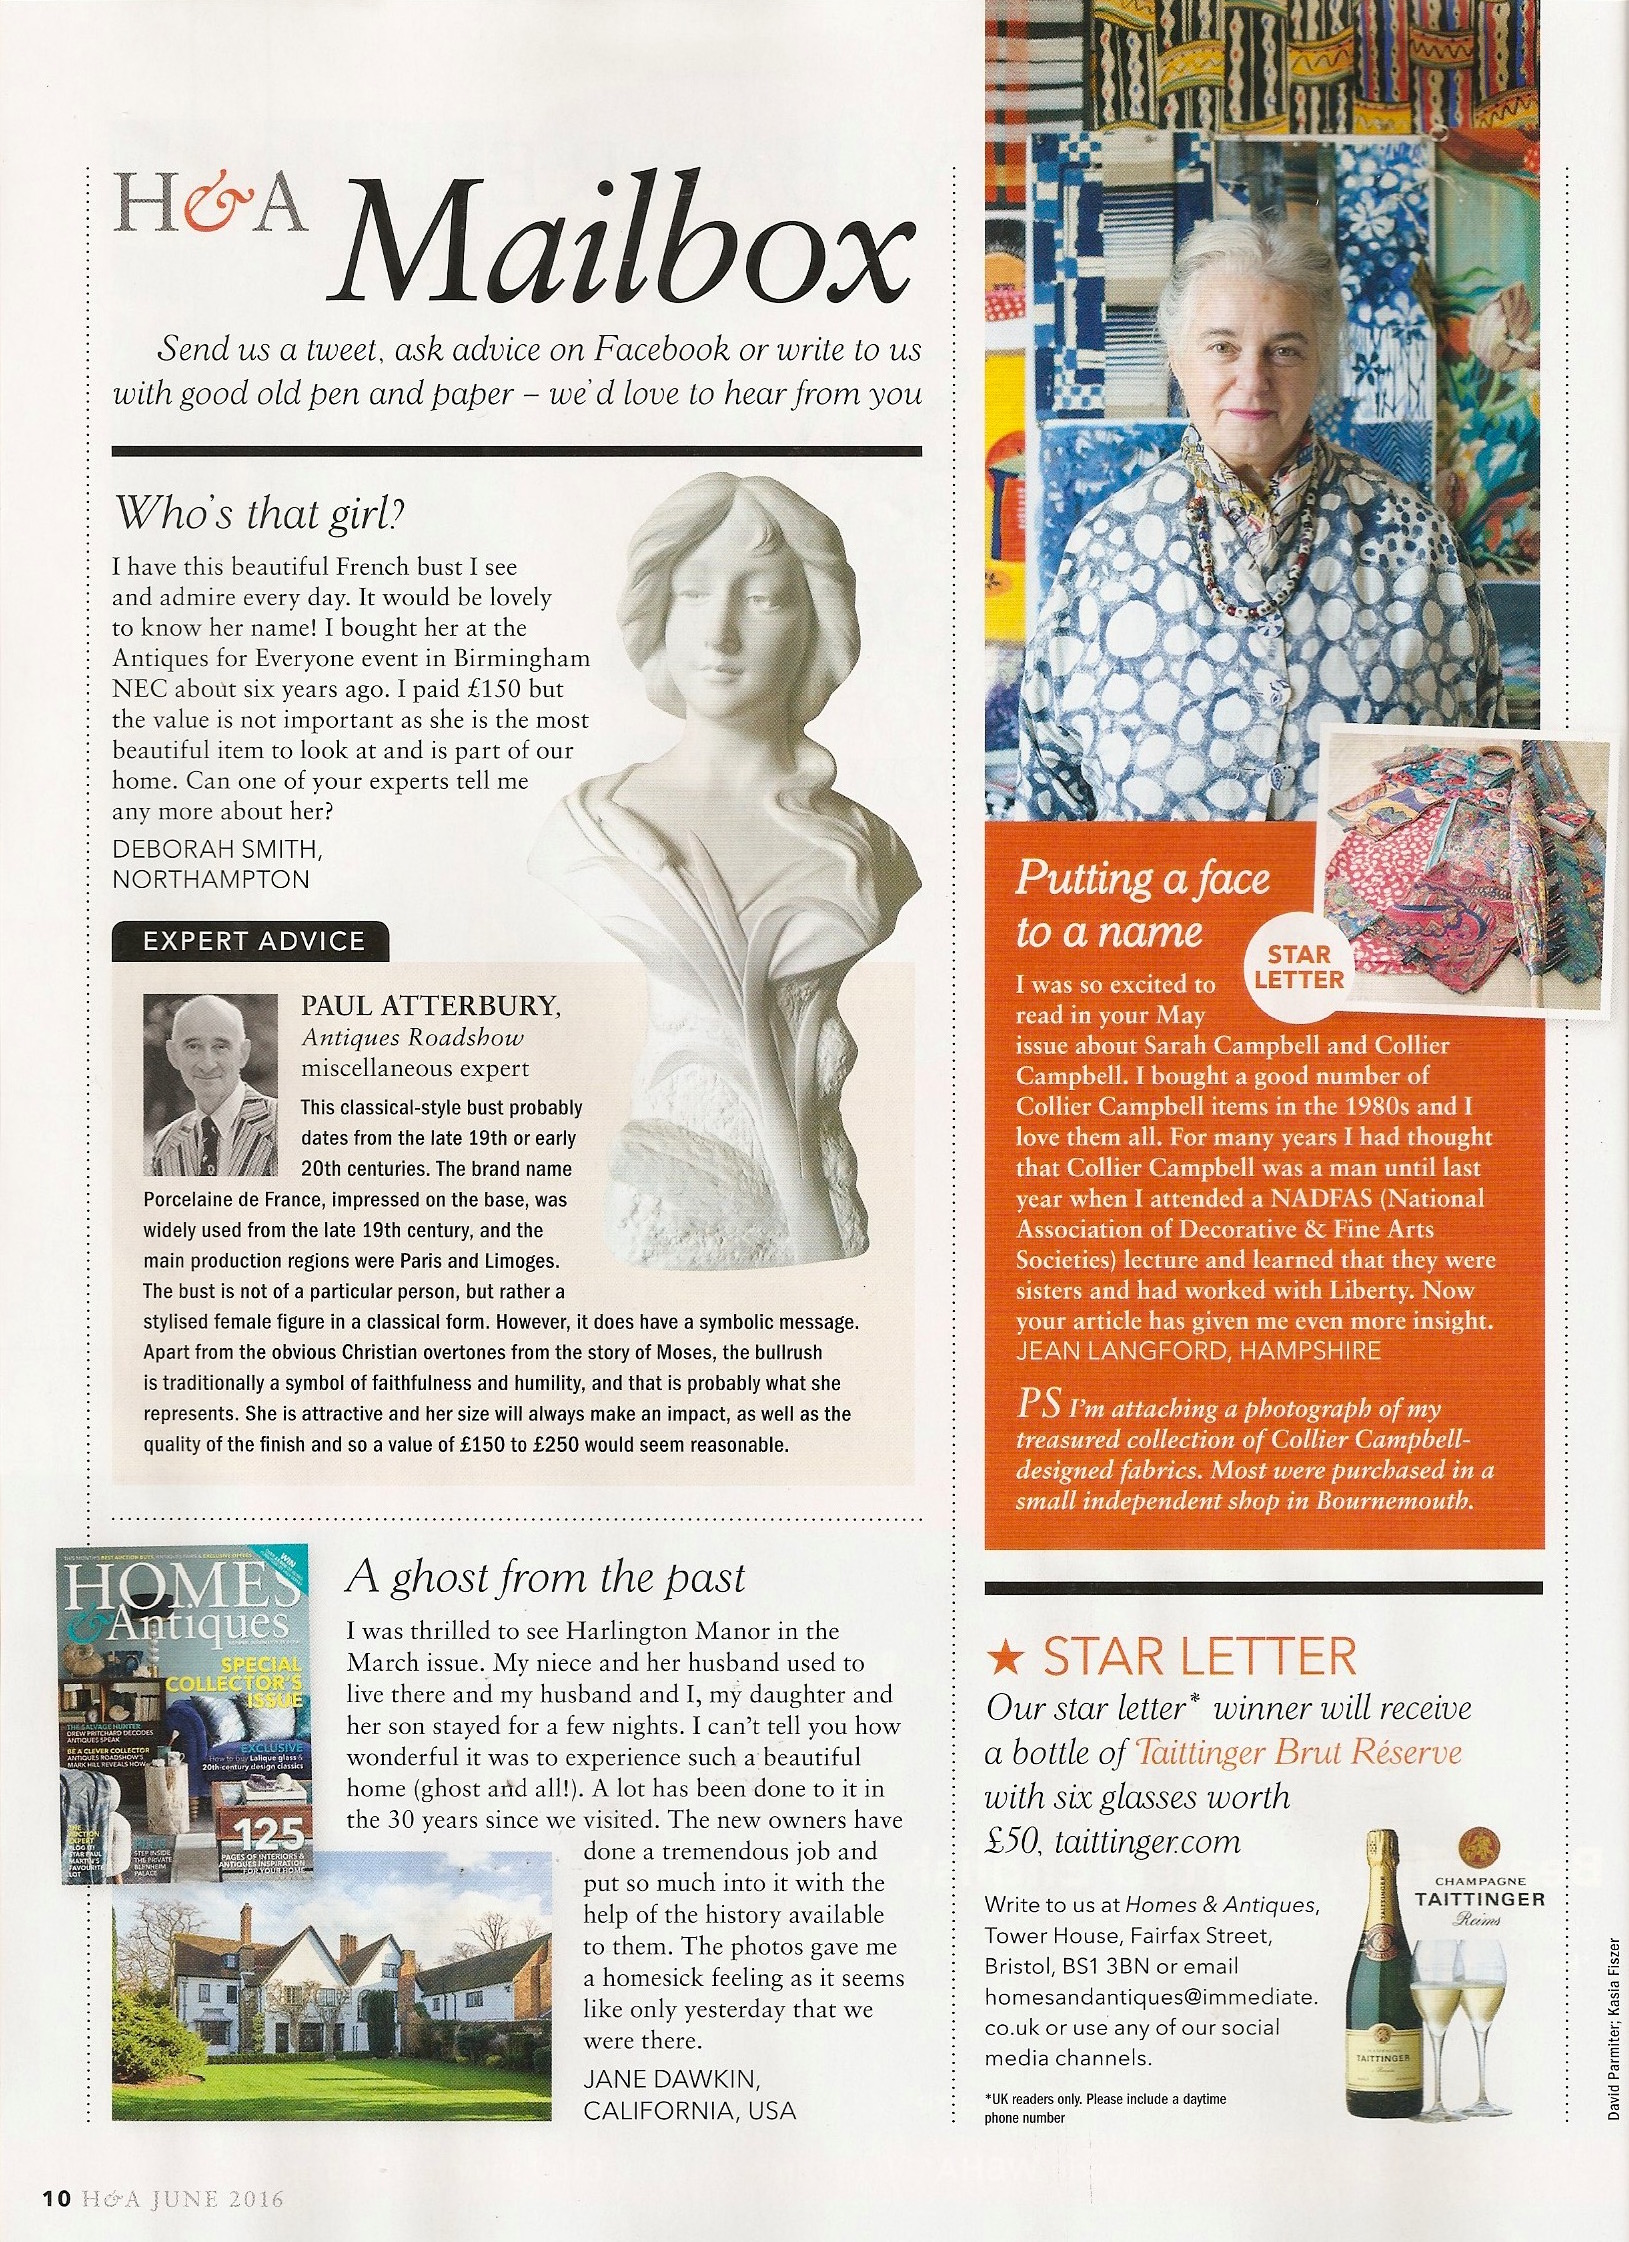 Homes & Antiques, page 10, June 2016